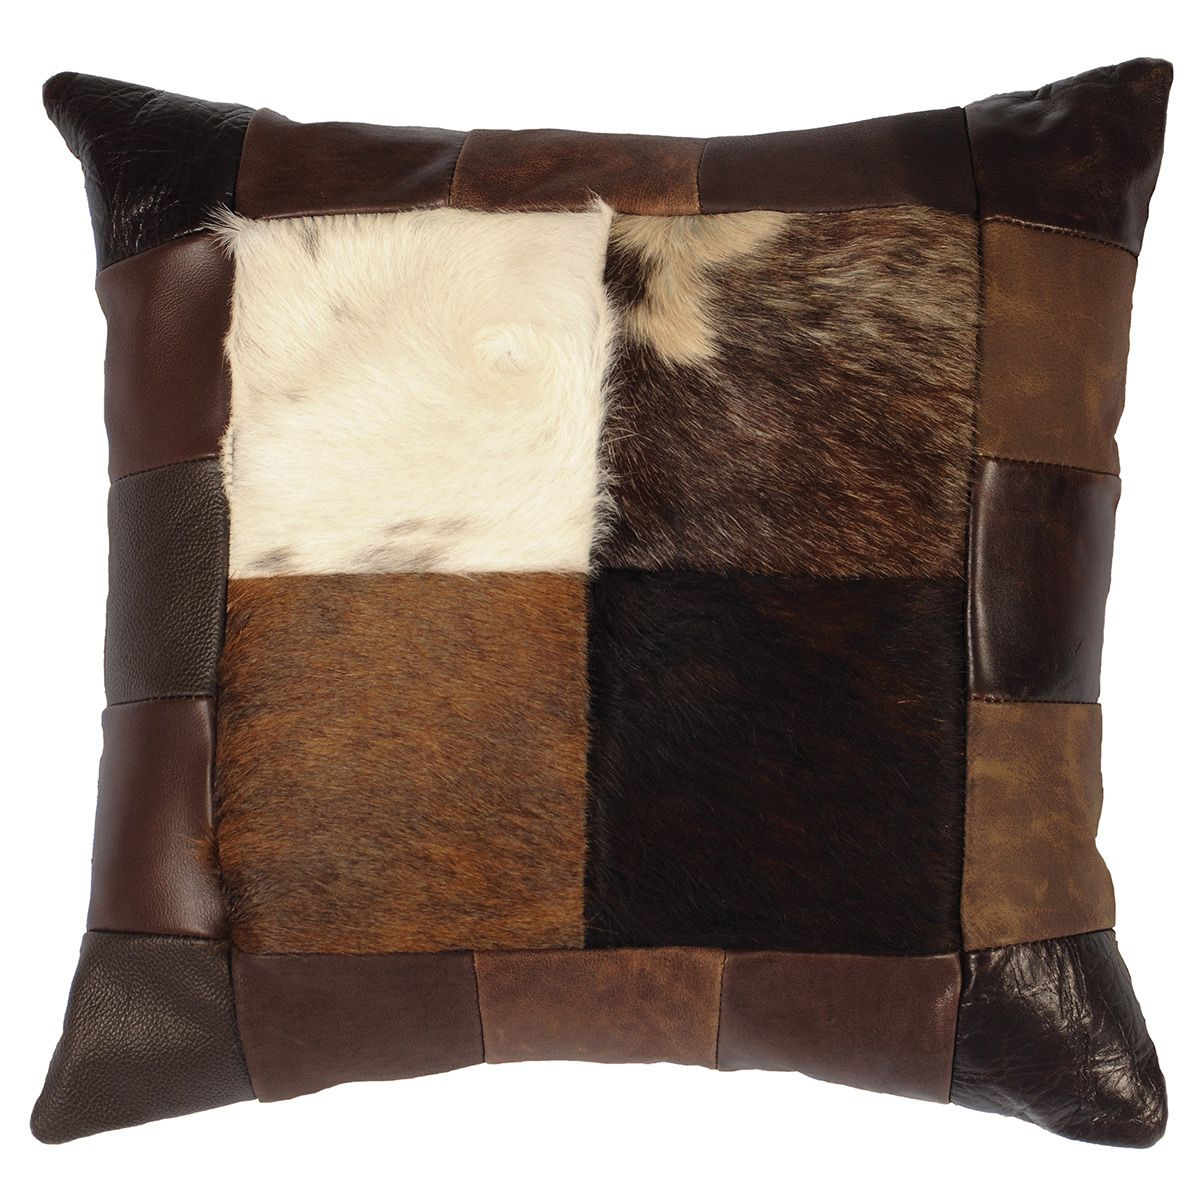 Hair on Hide & Leather Collage Square Pillow with Fabric Back